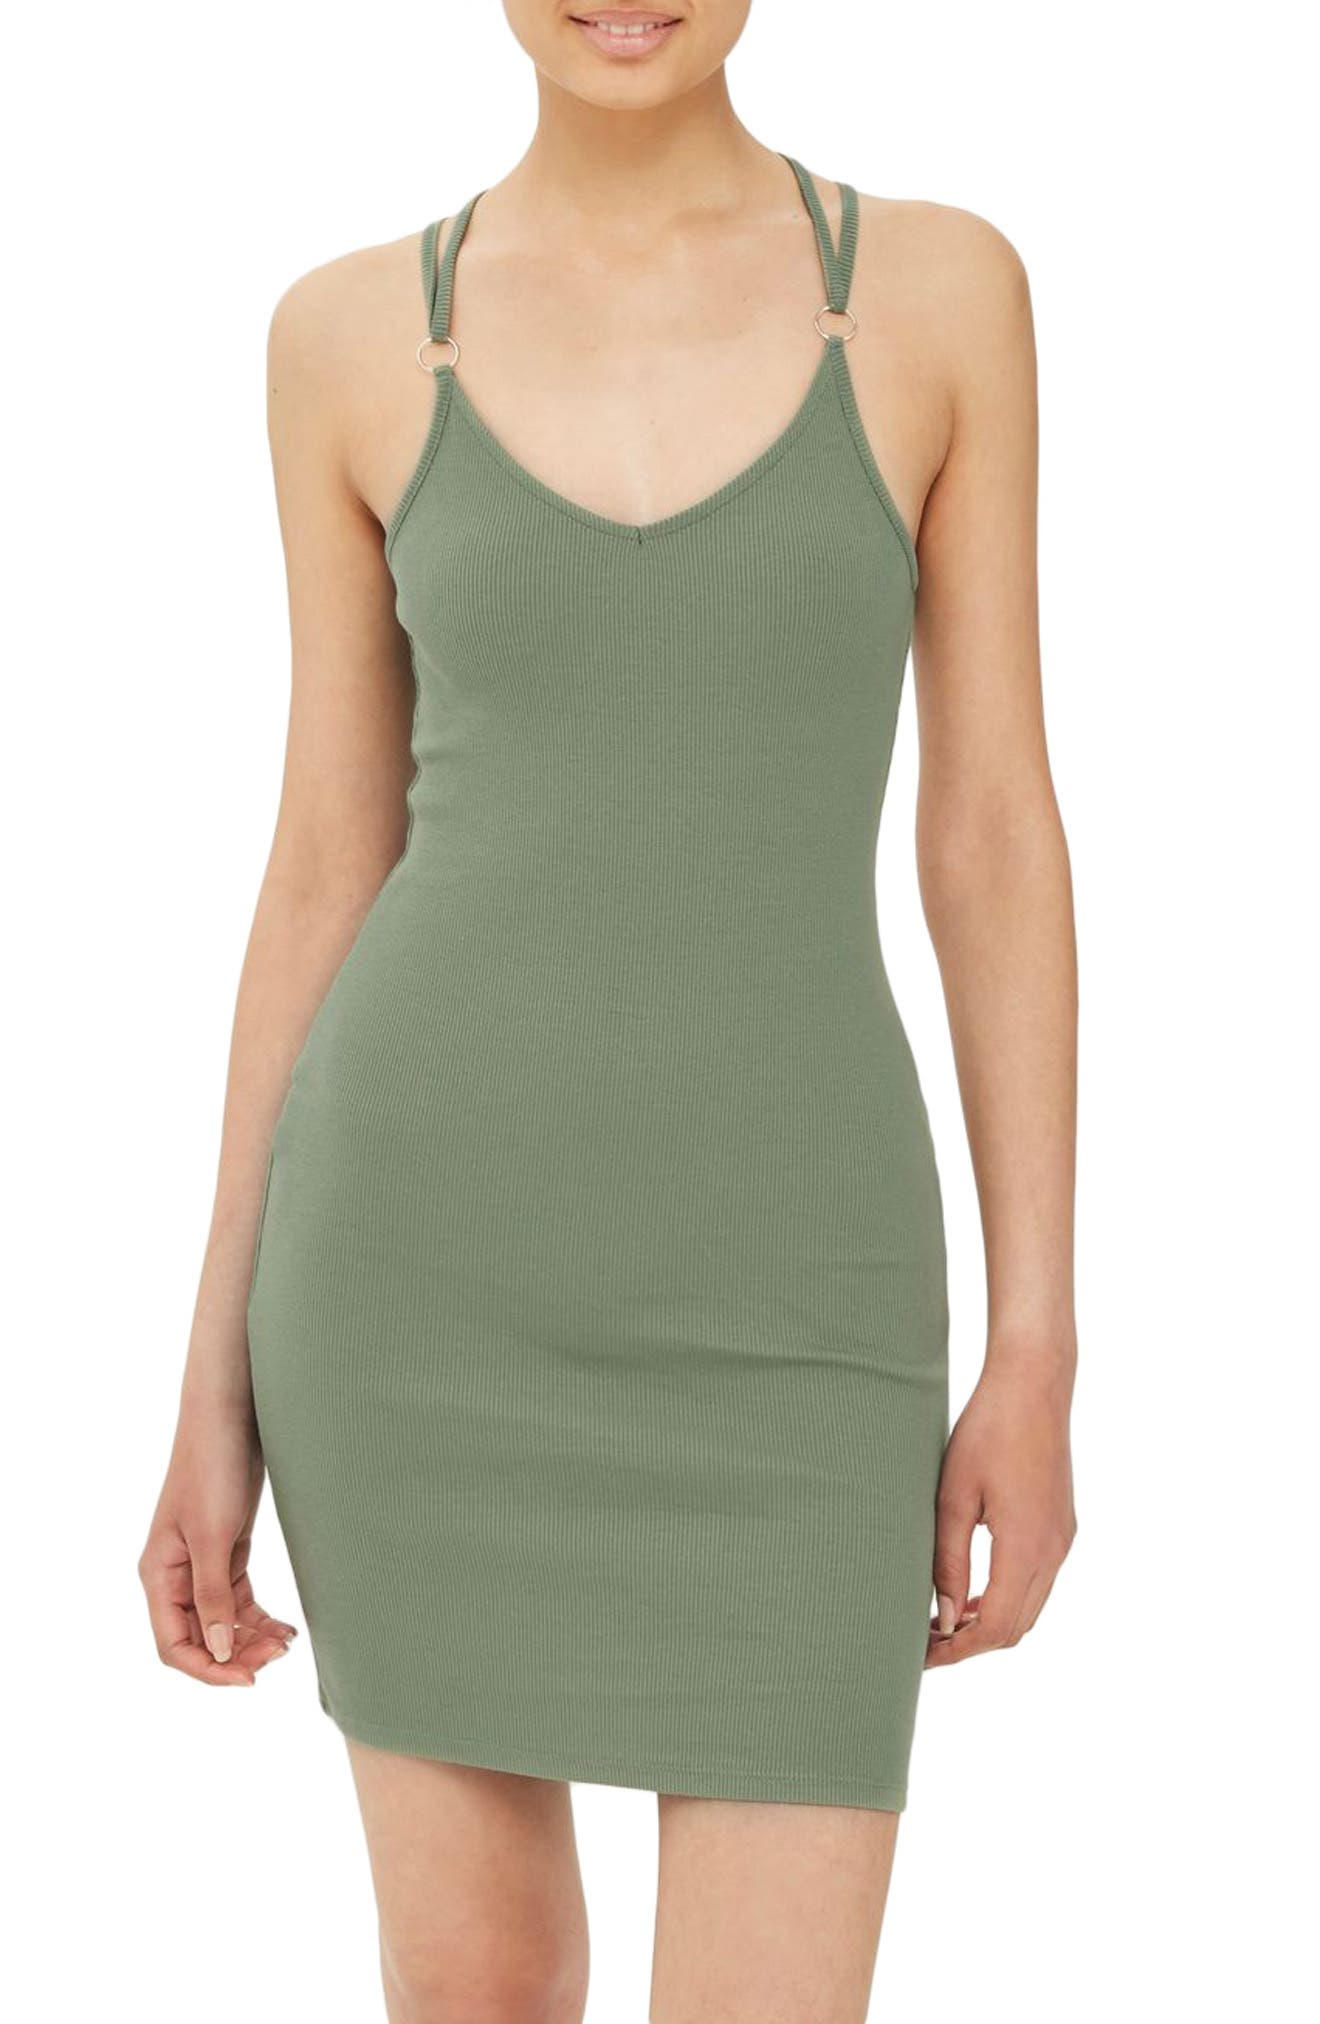 Topshop Strappy Back Body-Con Dress